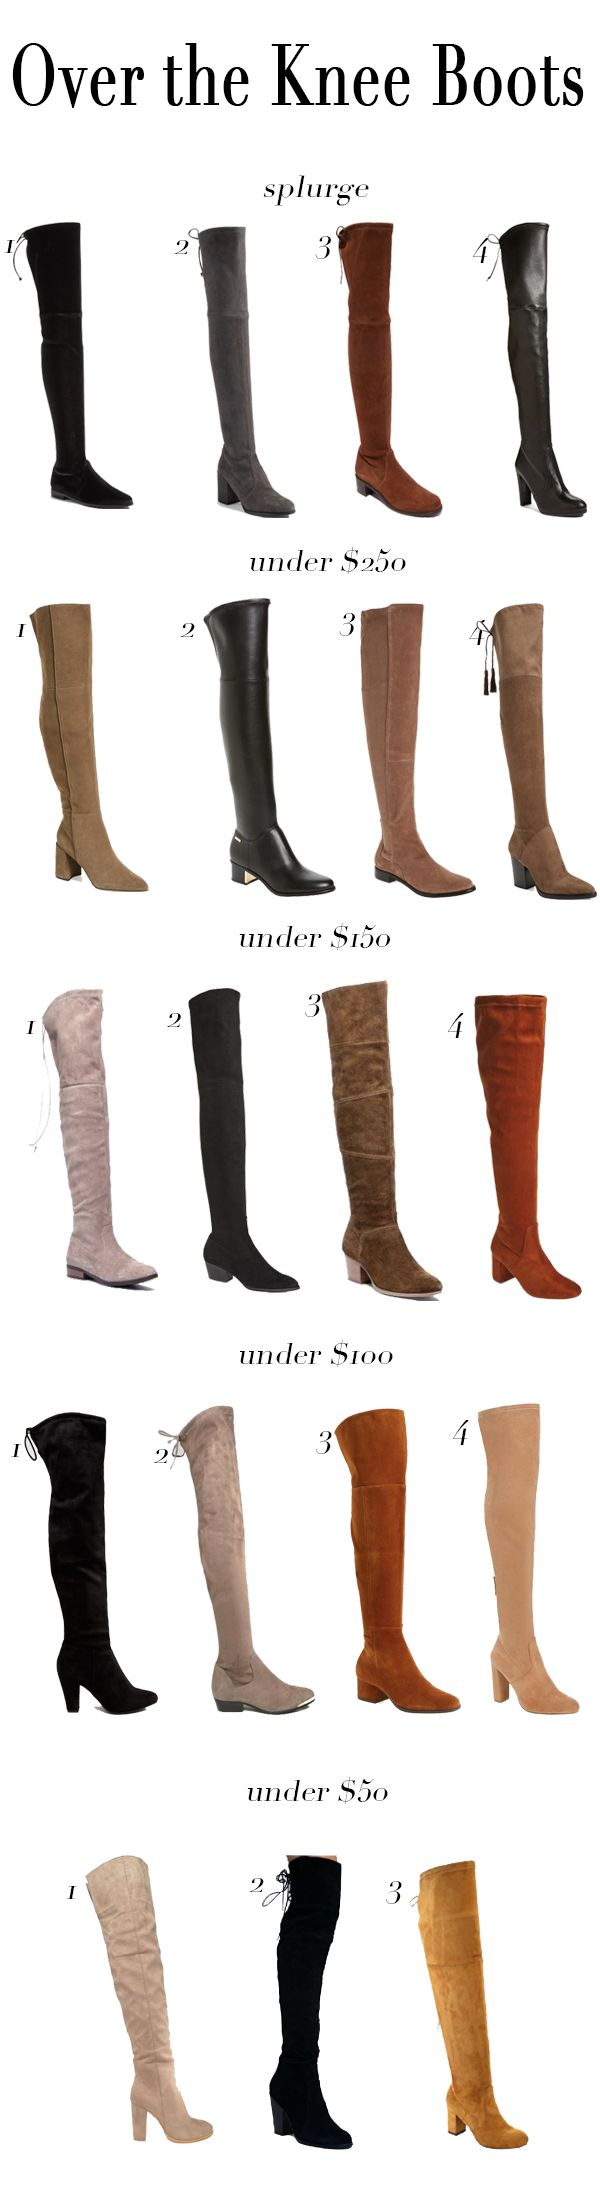 RD's Obsessions: Over the Knee Boots, affordable over the knee boots, boots for every budget, budget friendly over the knee boots